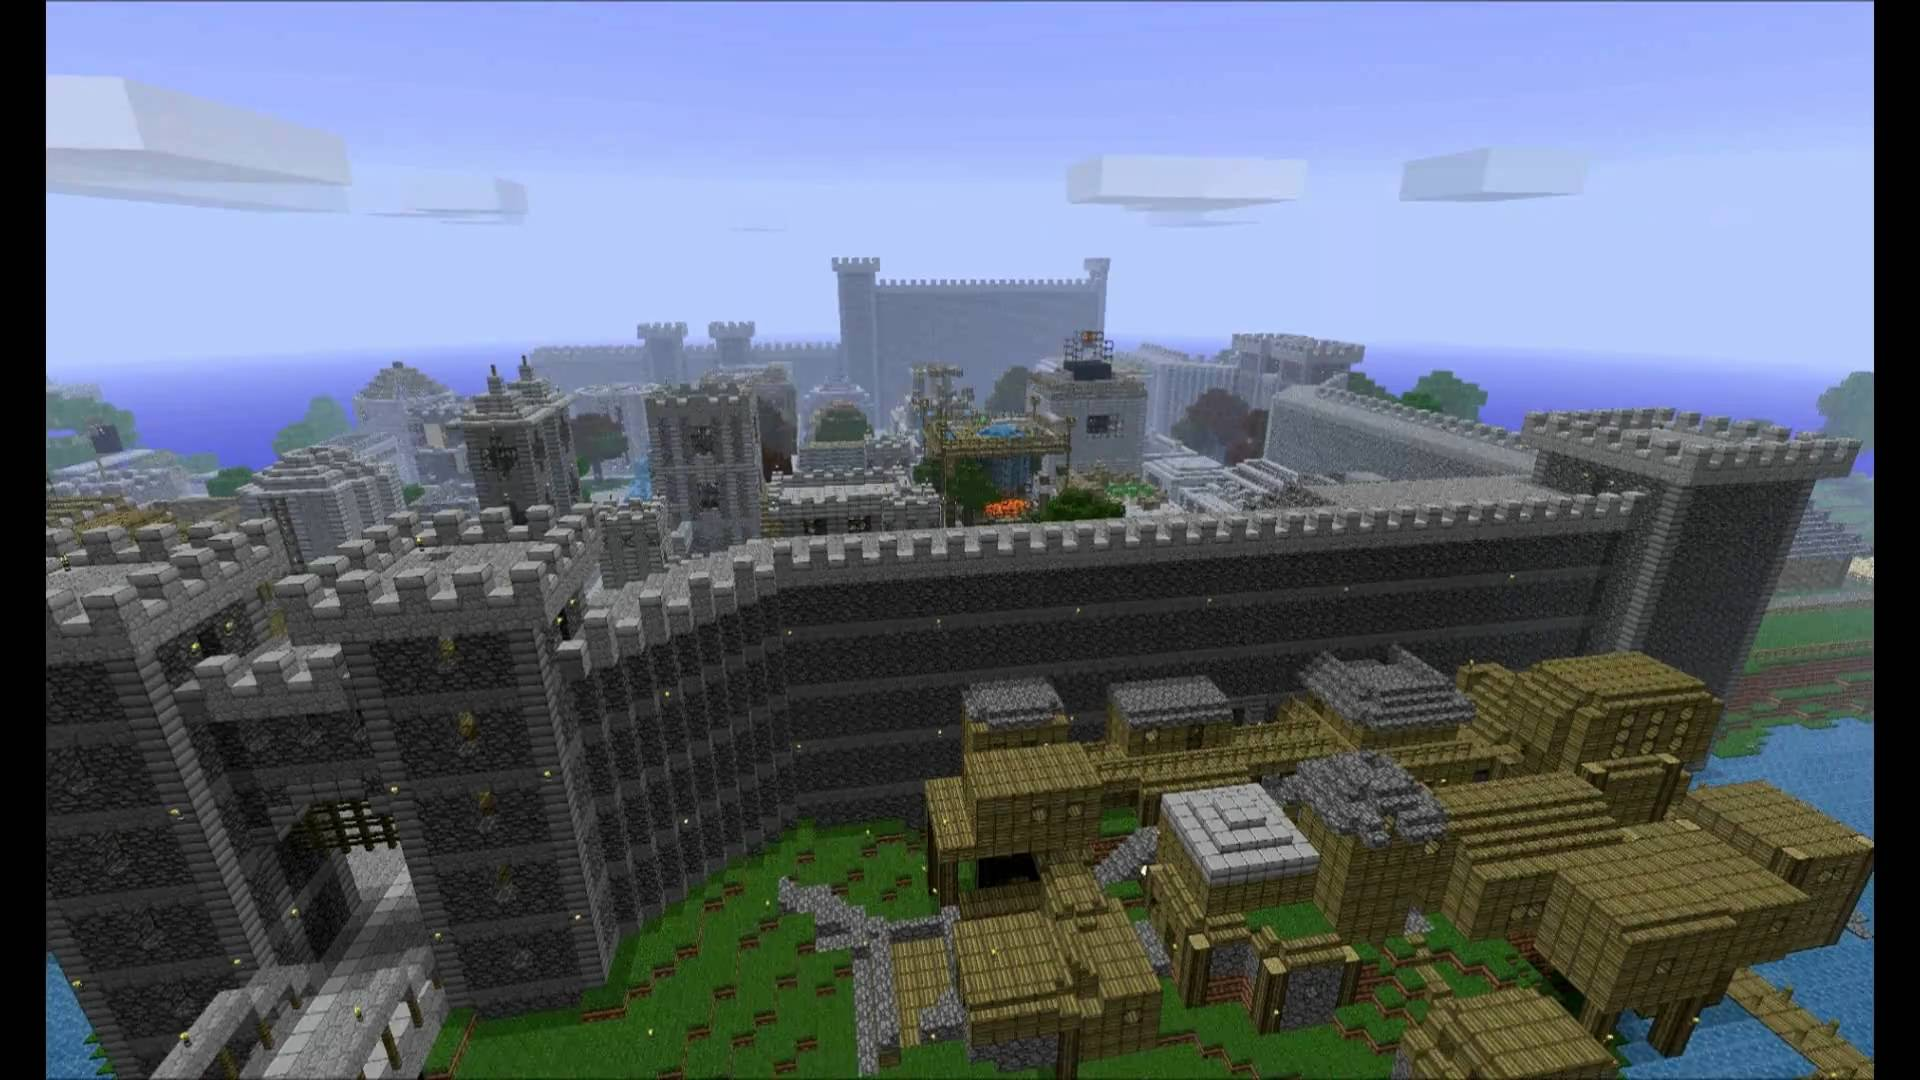 One of many incredible creations within Minecraft, a game that's being used as an educational tool.